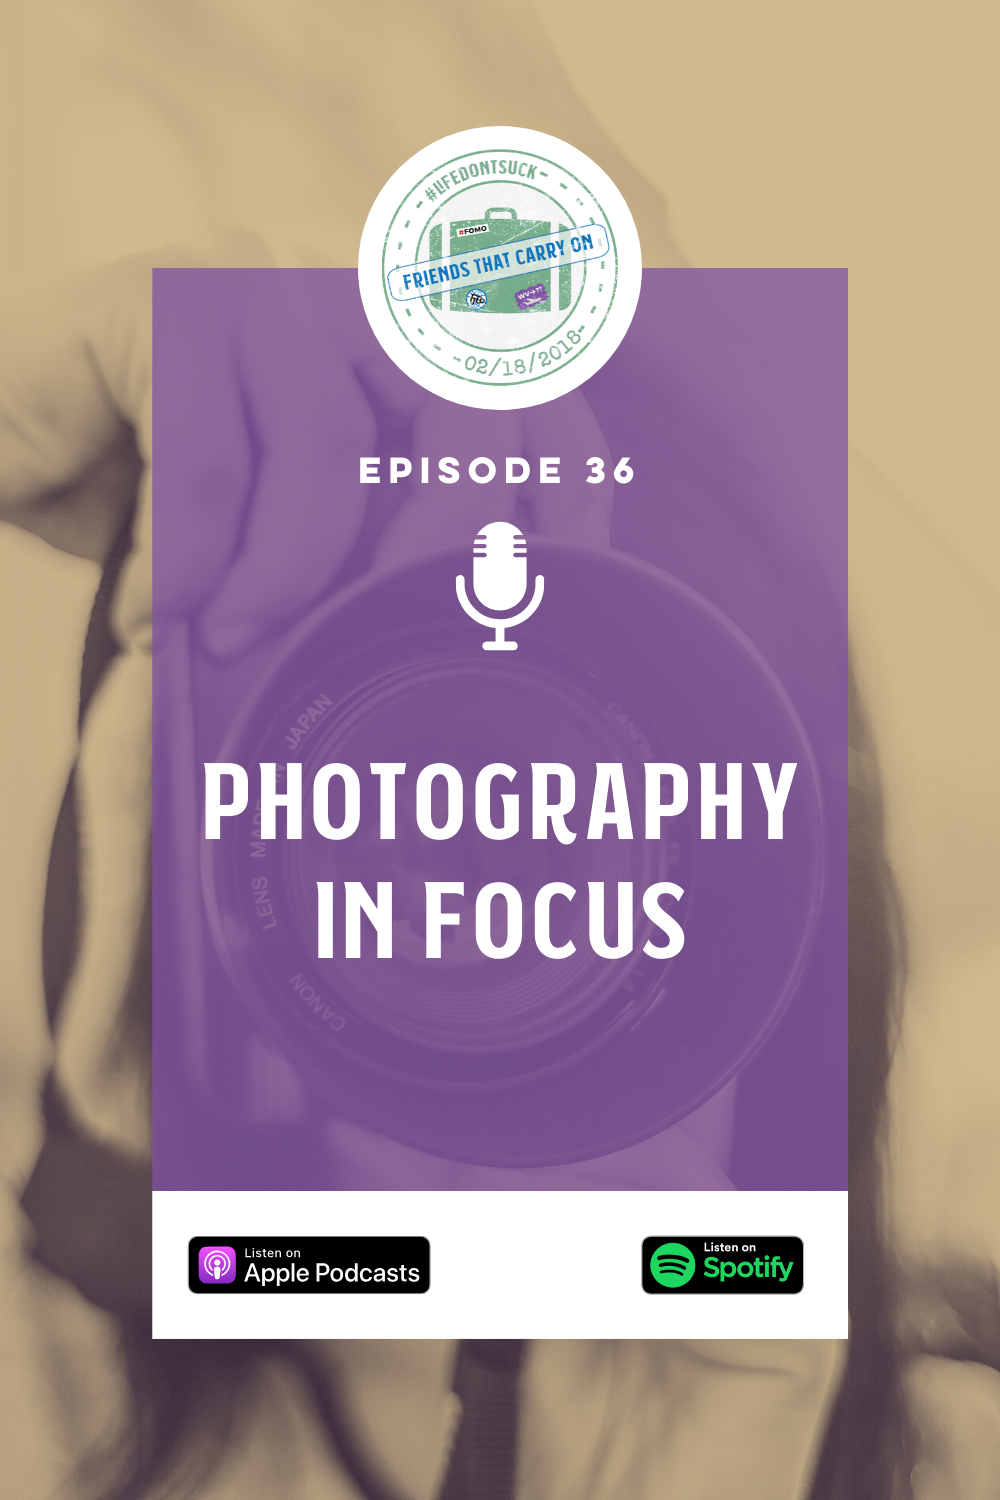 Join the Friends as they discuss photography, the importance of a quality photograph, and essential tips to improve your photos!  #Photography #Travel #Pictures #Focus #Podcasts